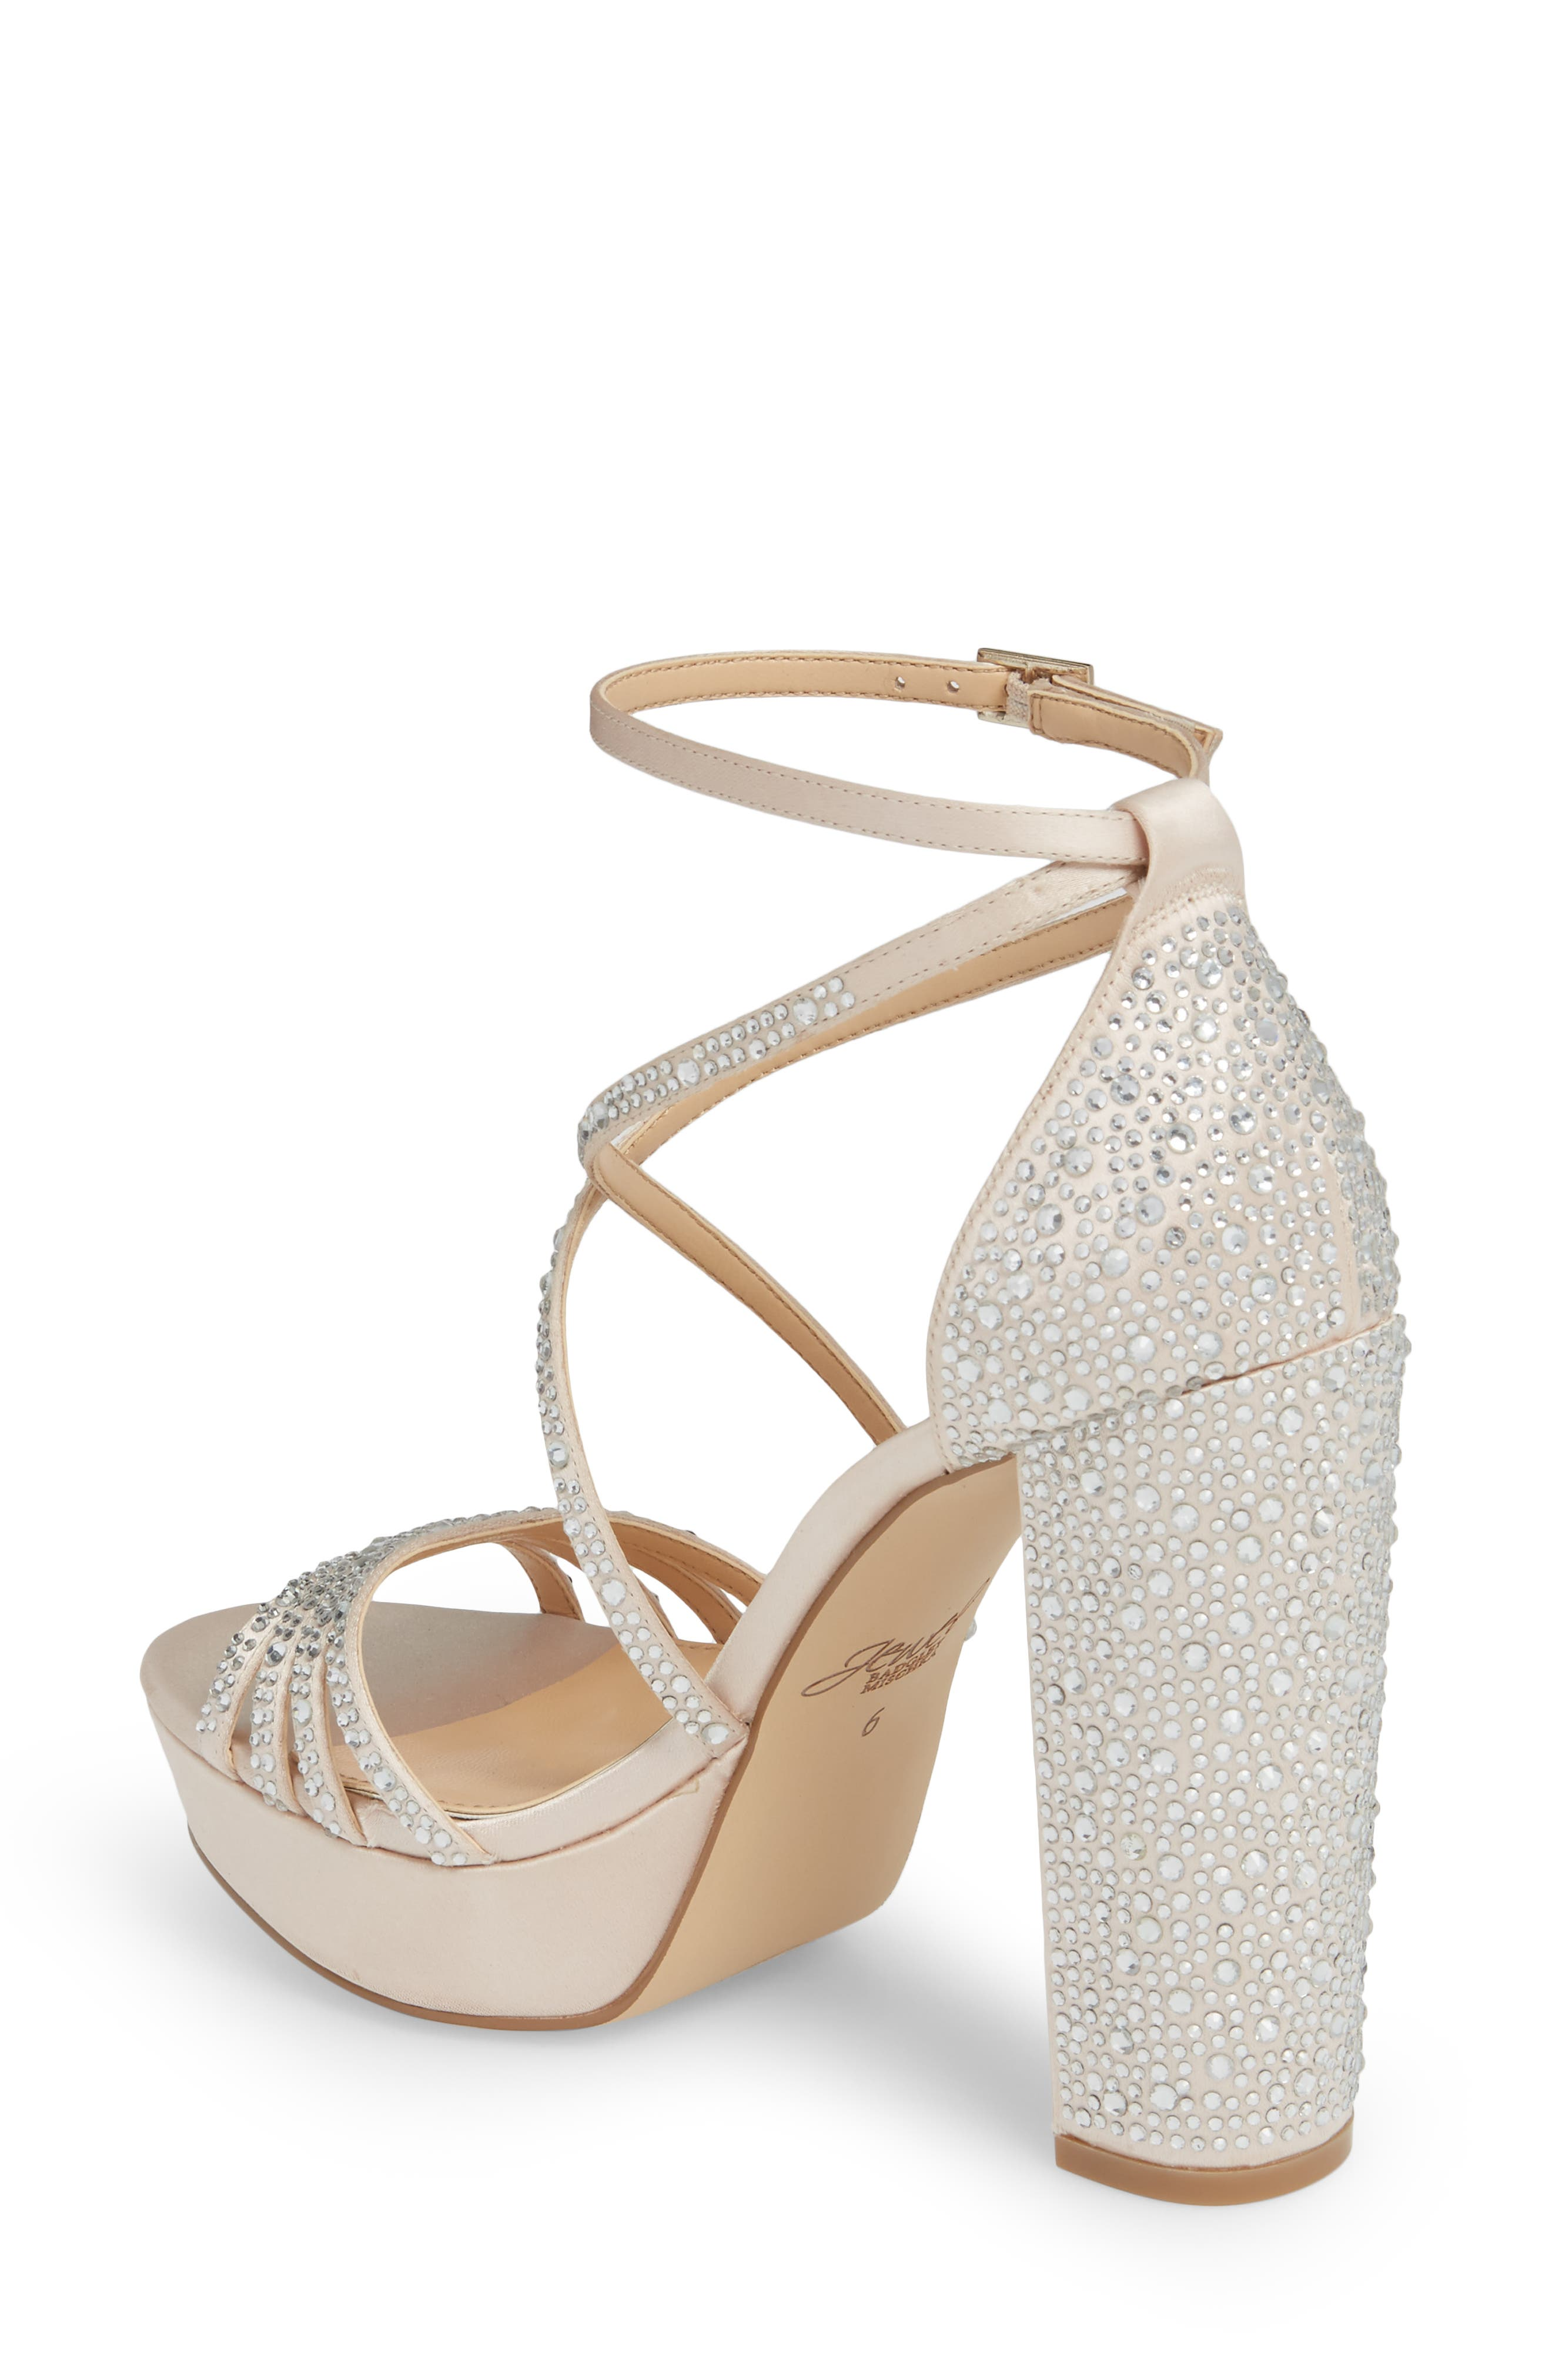 Tarah Crystal Embellished Platform Sandal,                             Alternate thumbnail 6, color,